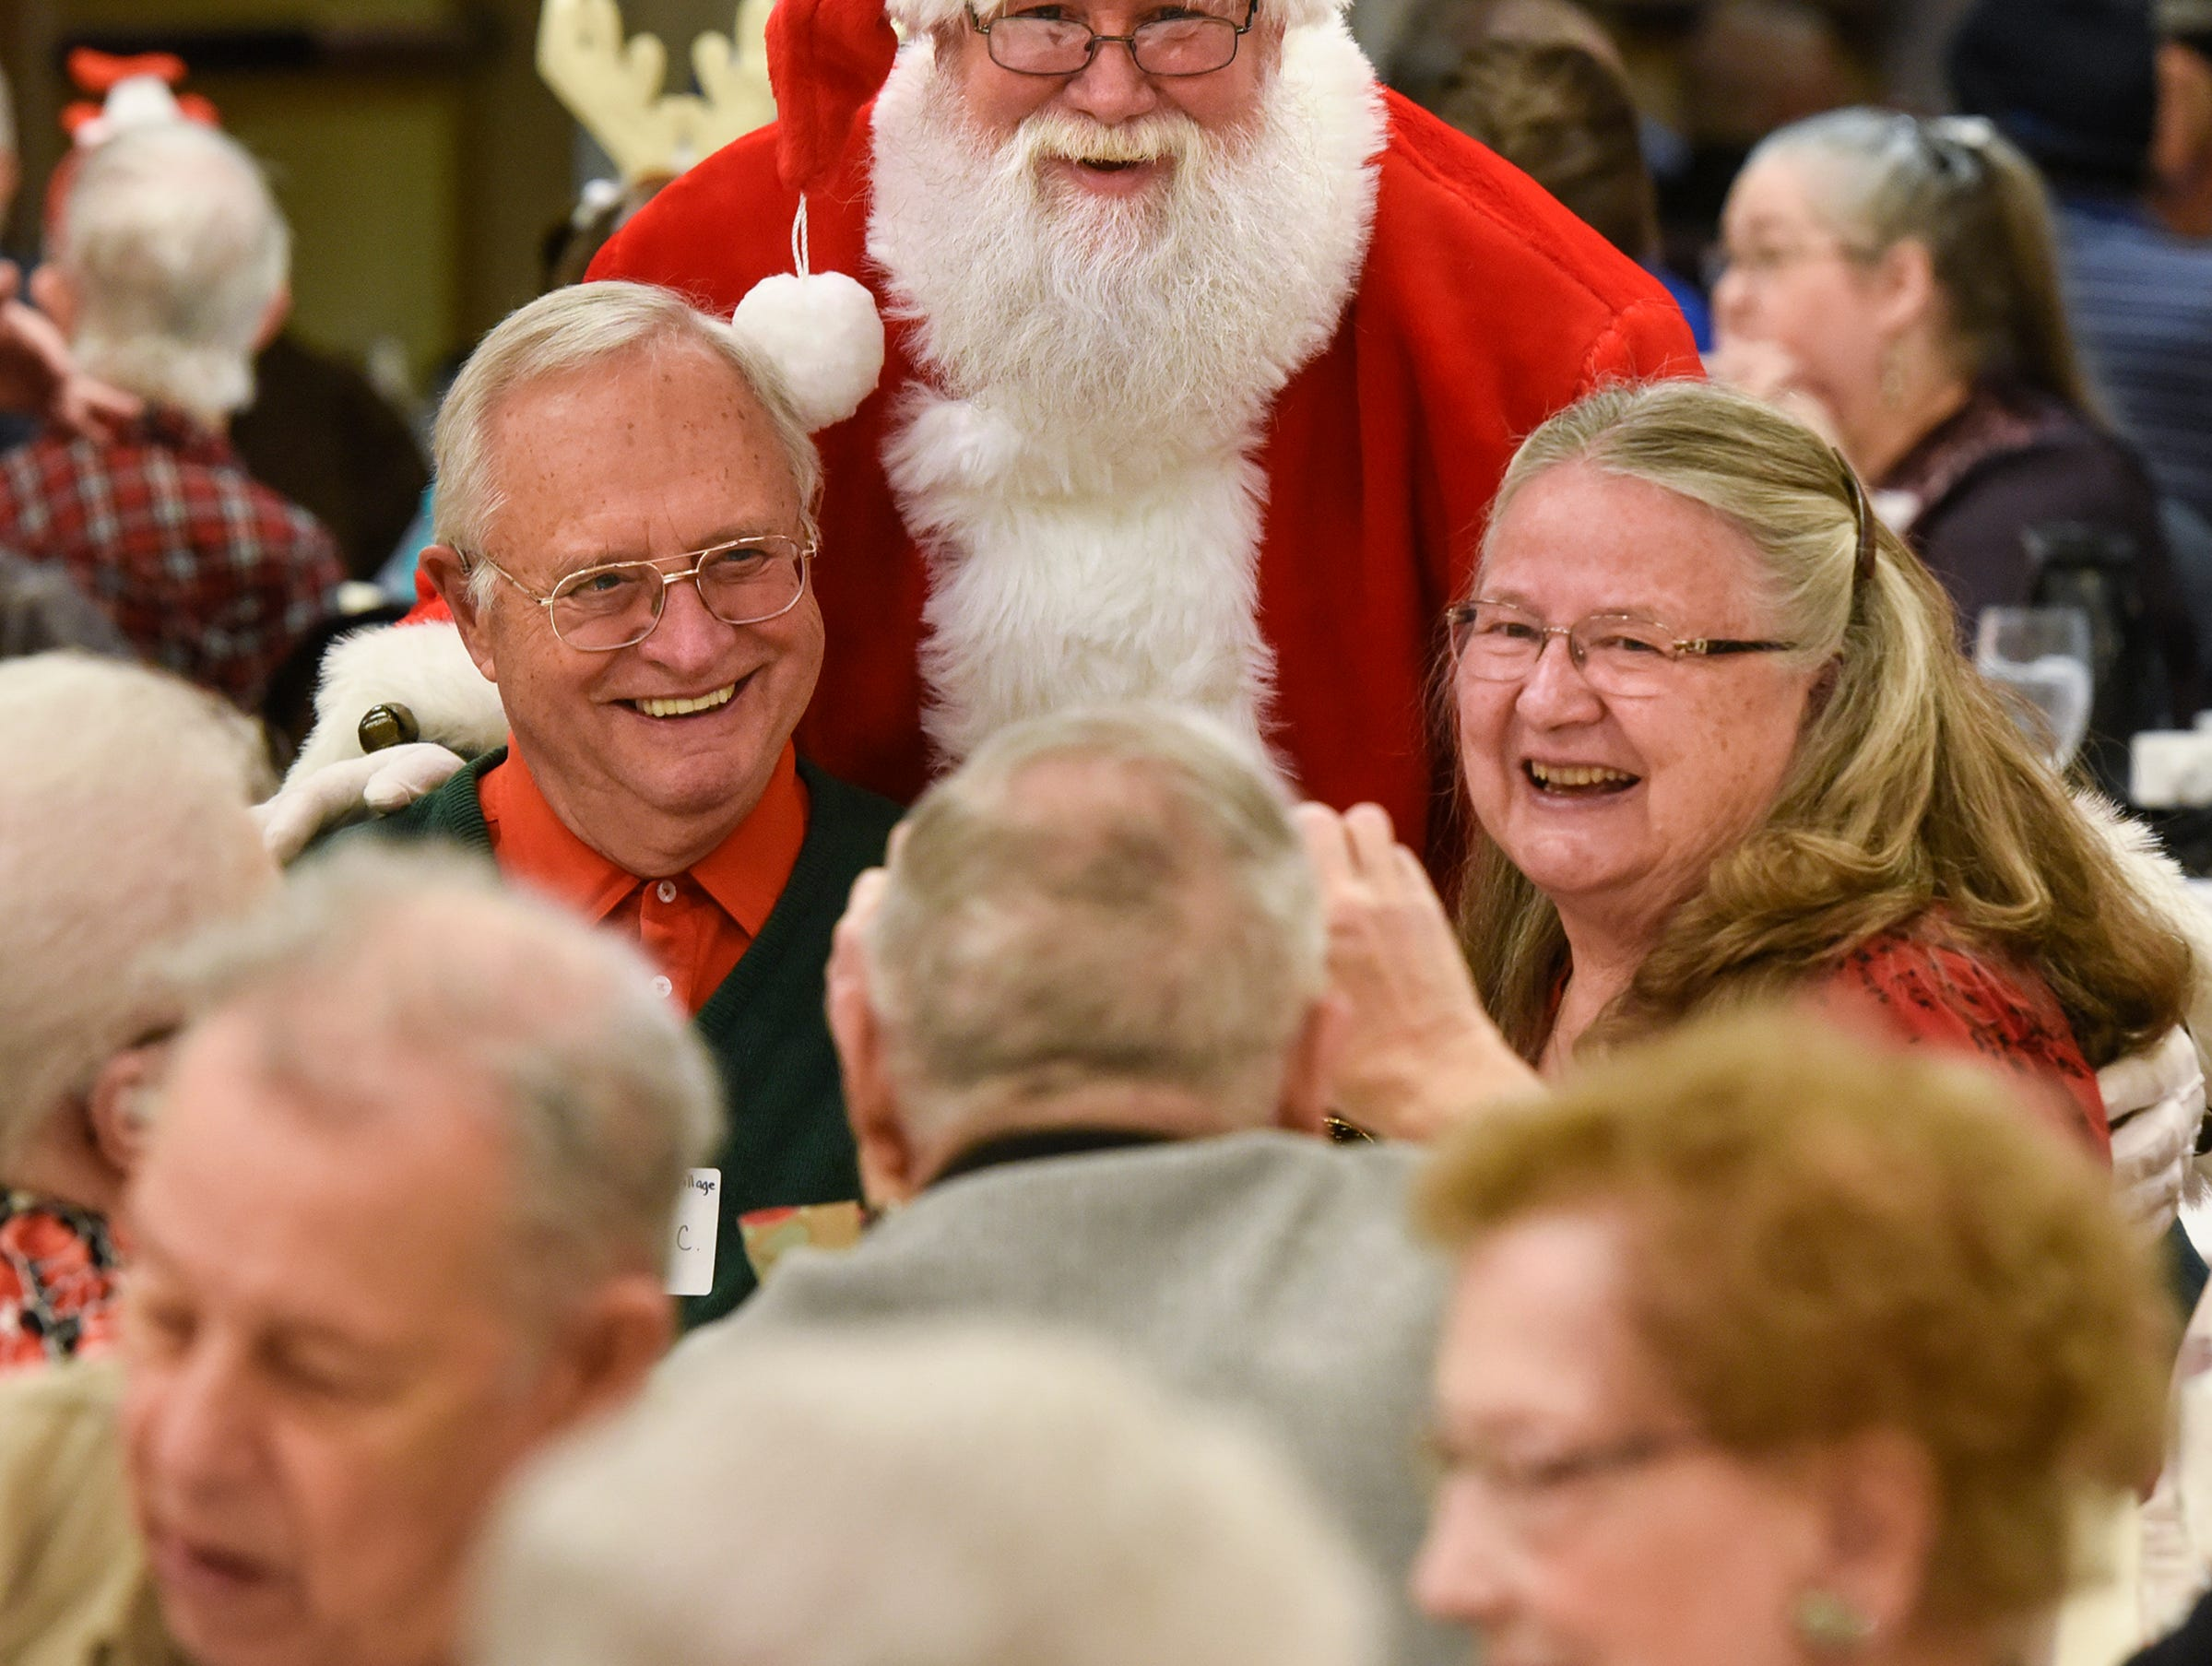 Santa Craig Diedrich poses for photos with guests during the Dinner with Santa event Monday, Dec. 17, in St. Cloud.